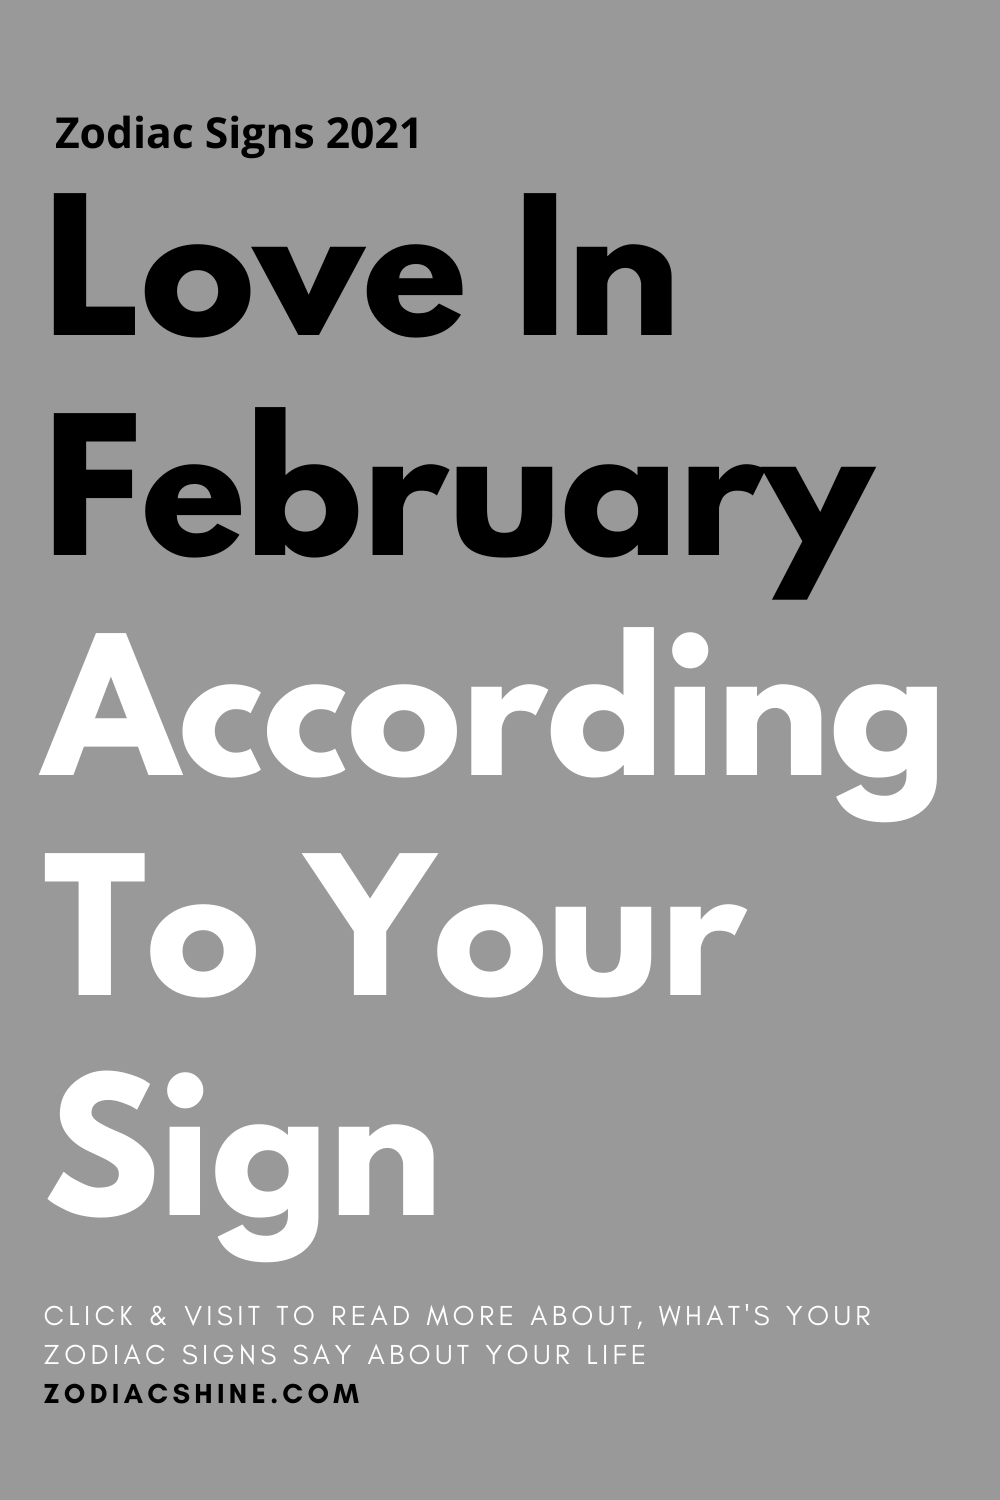 Love In February According To Your Sign